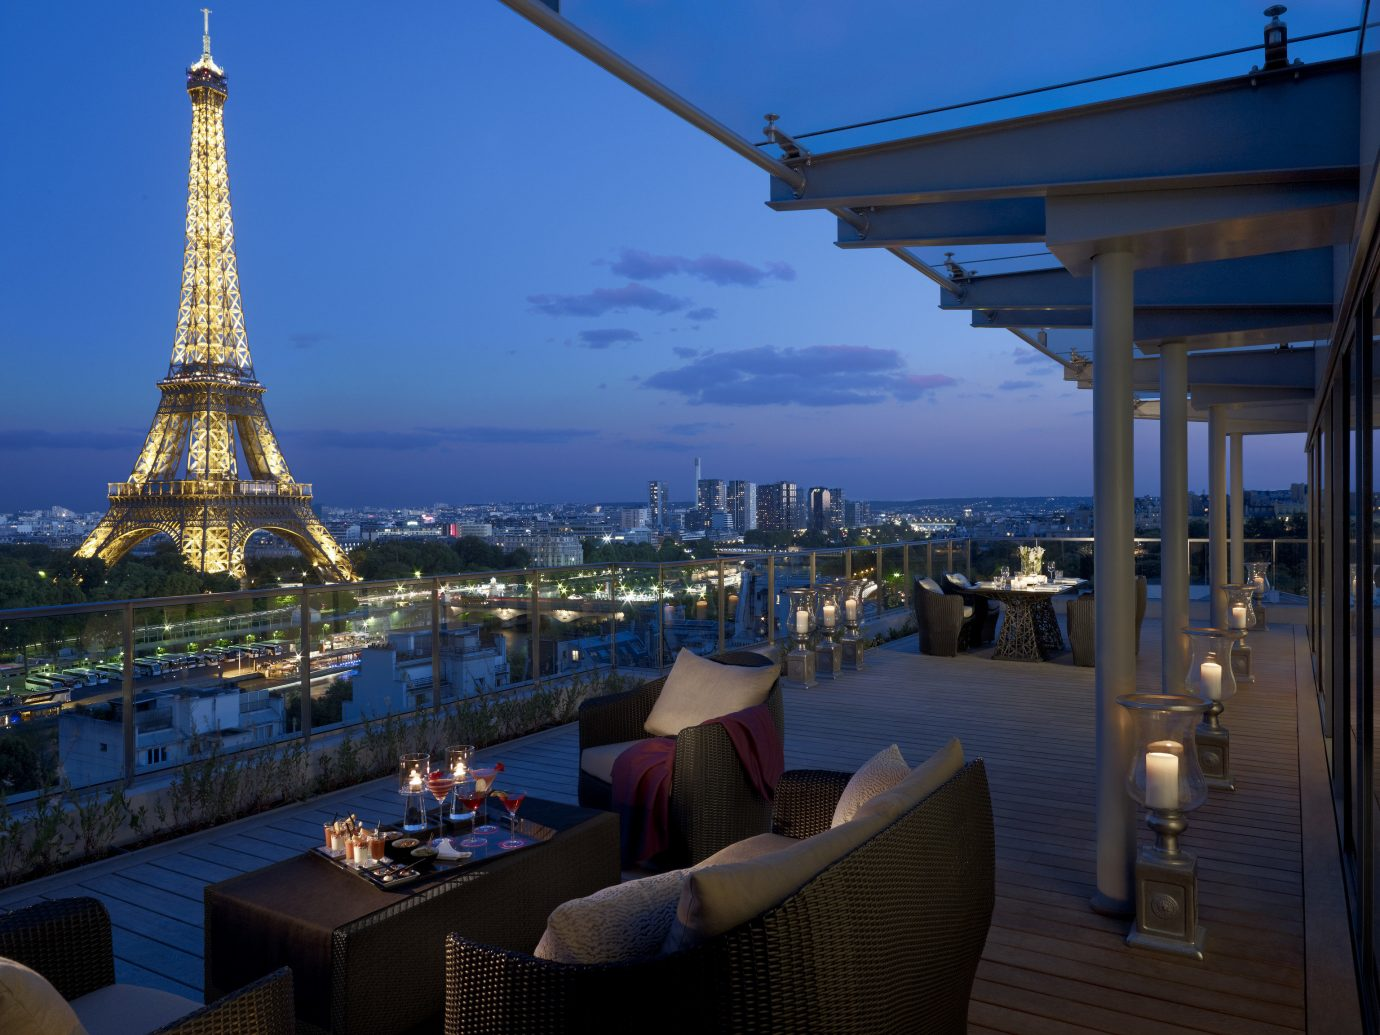 Hotels Luxury Travel sky outdoor Sea water lighting City evening real estate Resort vacation roof outdoor structure hotel tourism building overlooking